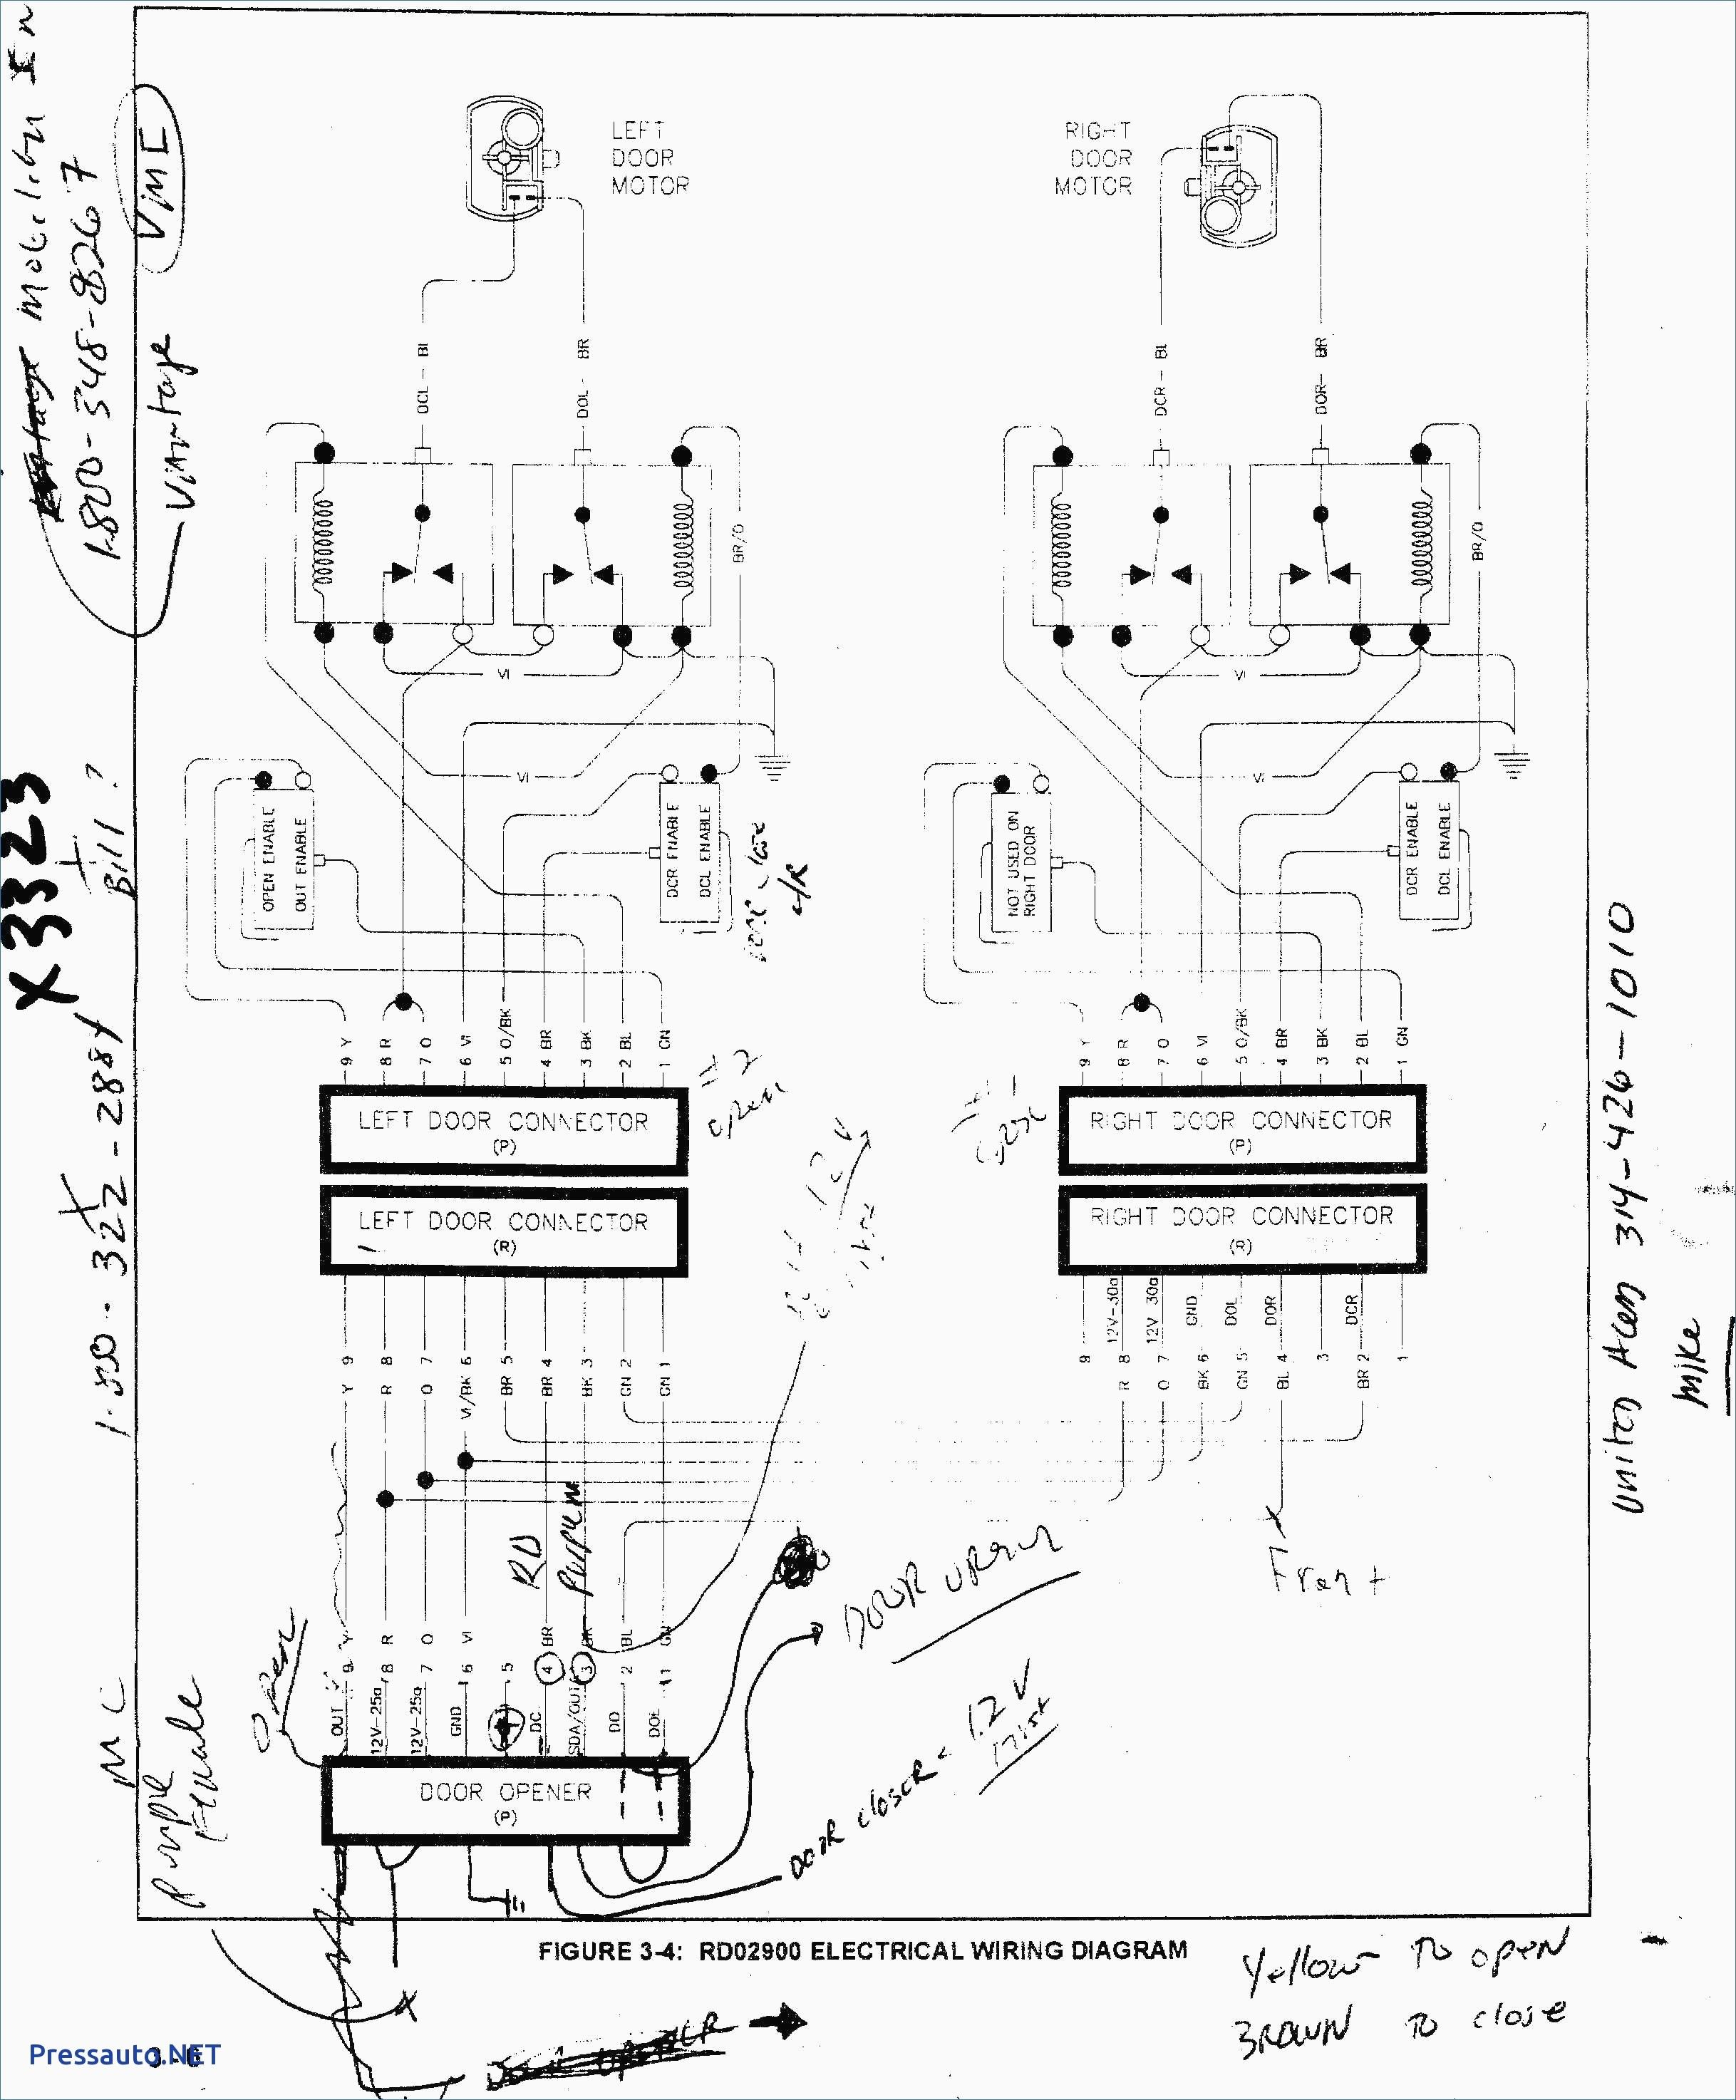 medium resolution of wiring diagram for precedent wiring diagram centrenew wiring diagram for 2006 club car precedent 48 volt